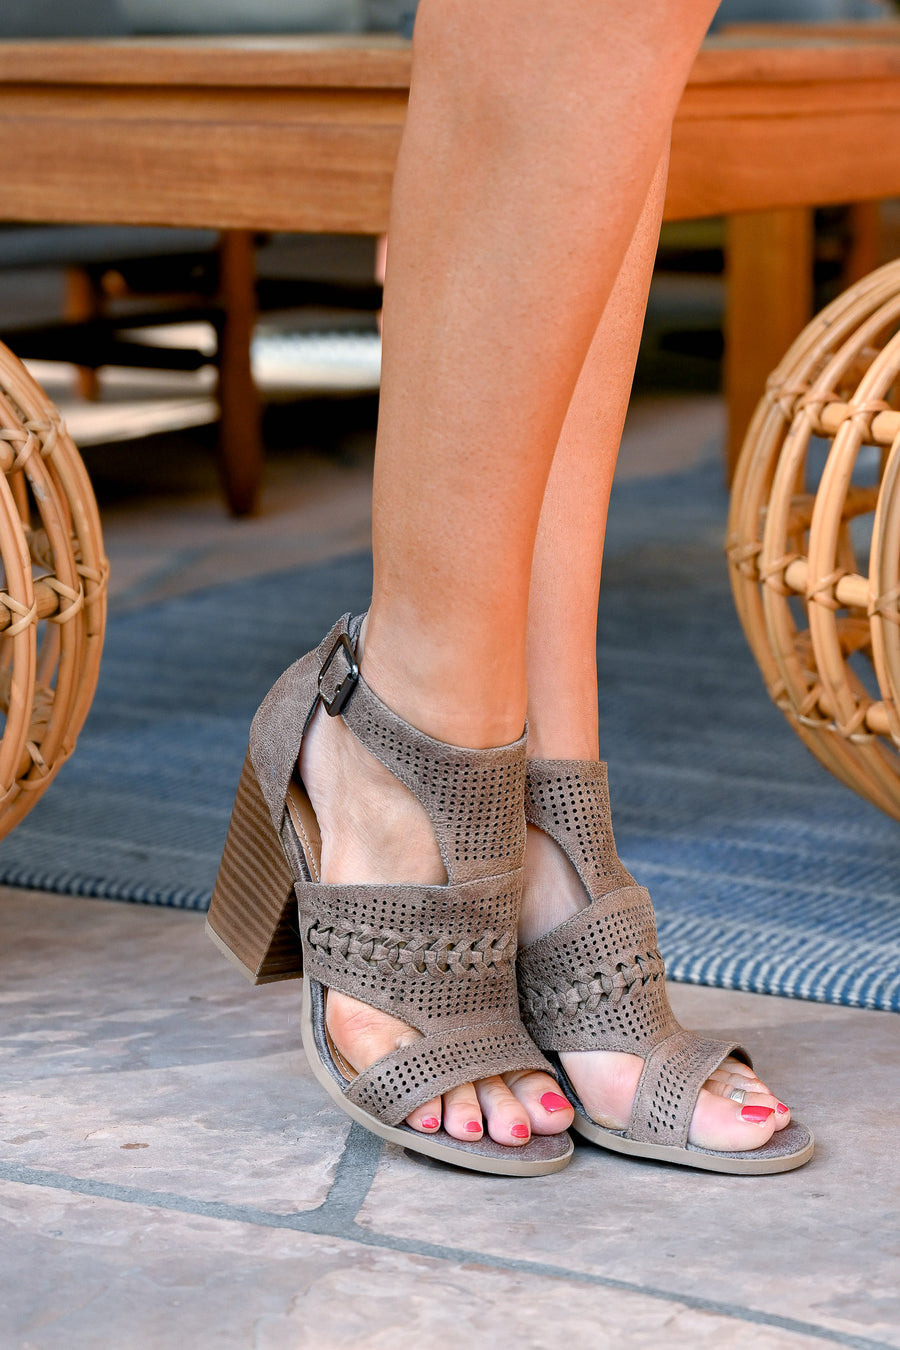 Kira Peep Toe Heels - Grey women's laser-cut out, braided sandals, Closet Candy Boutique 1